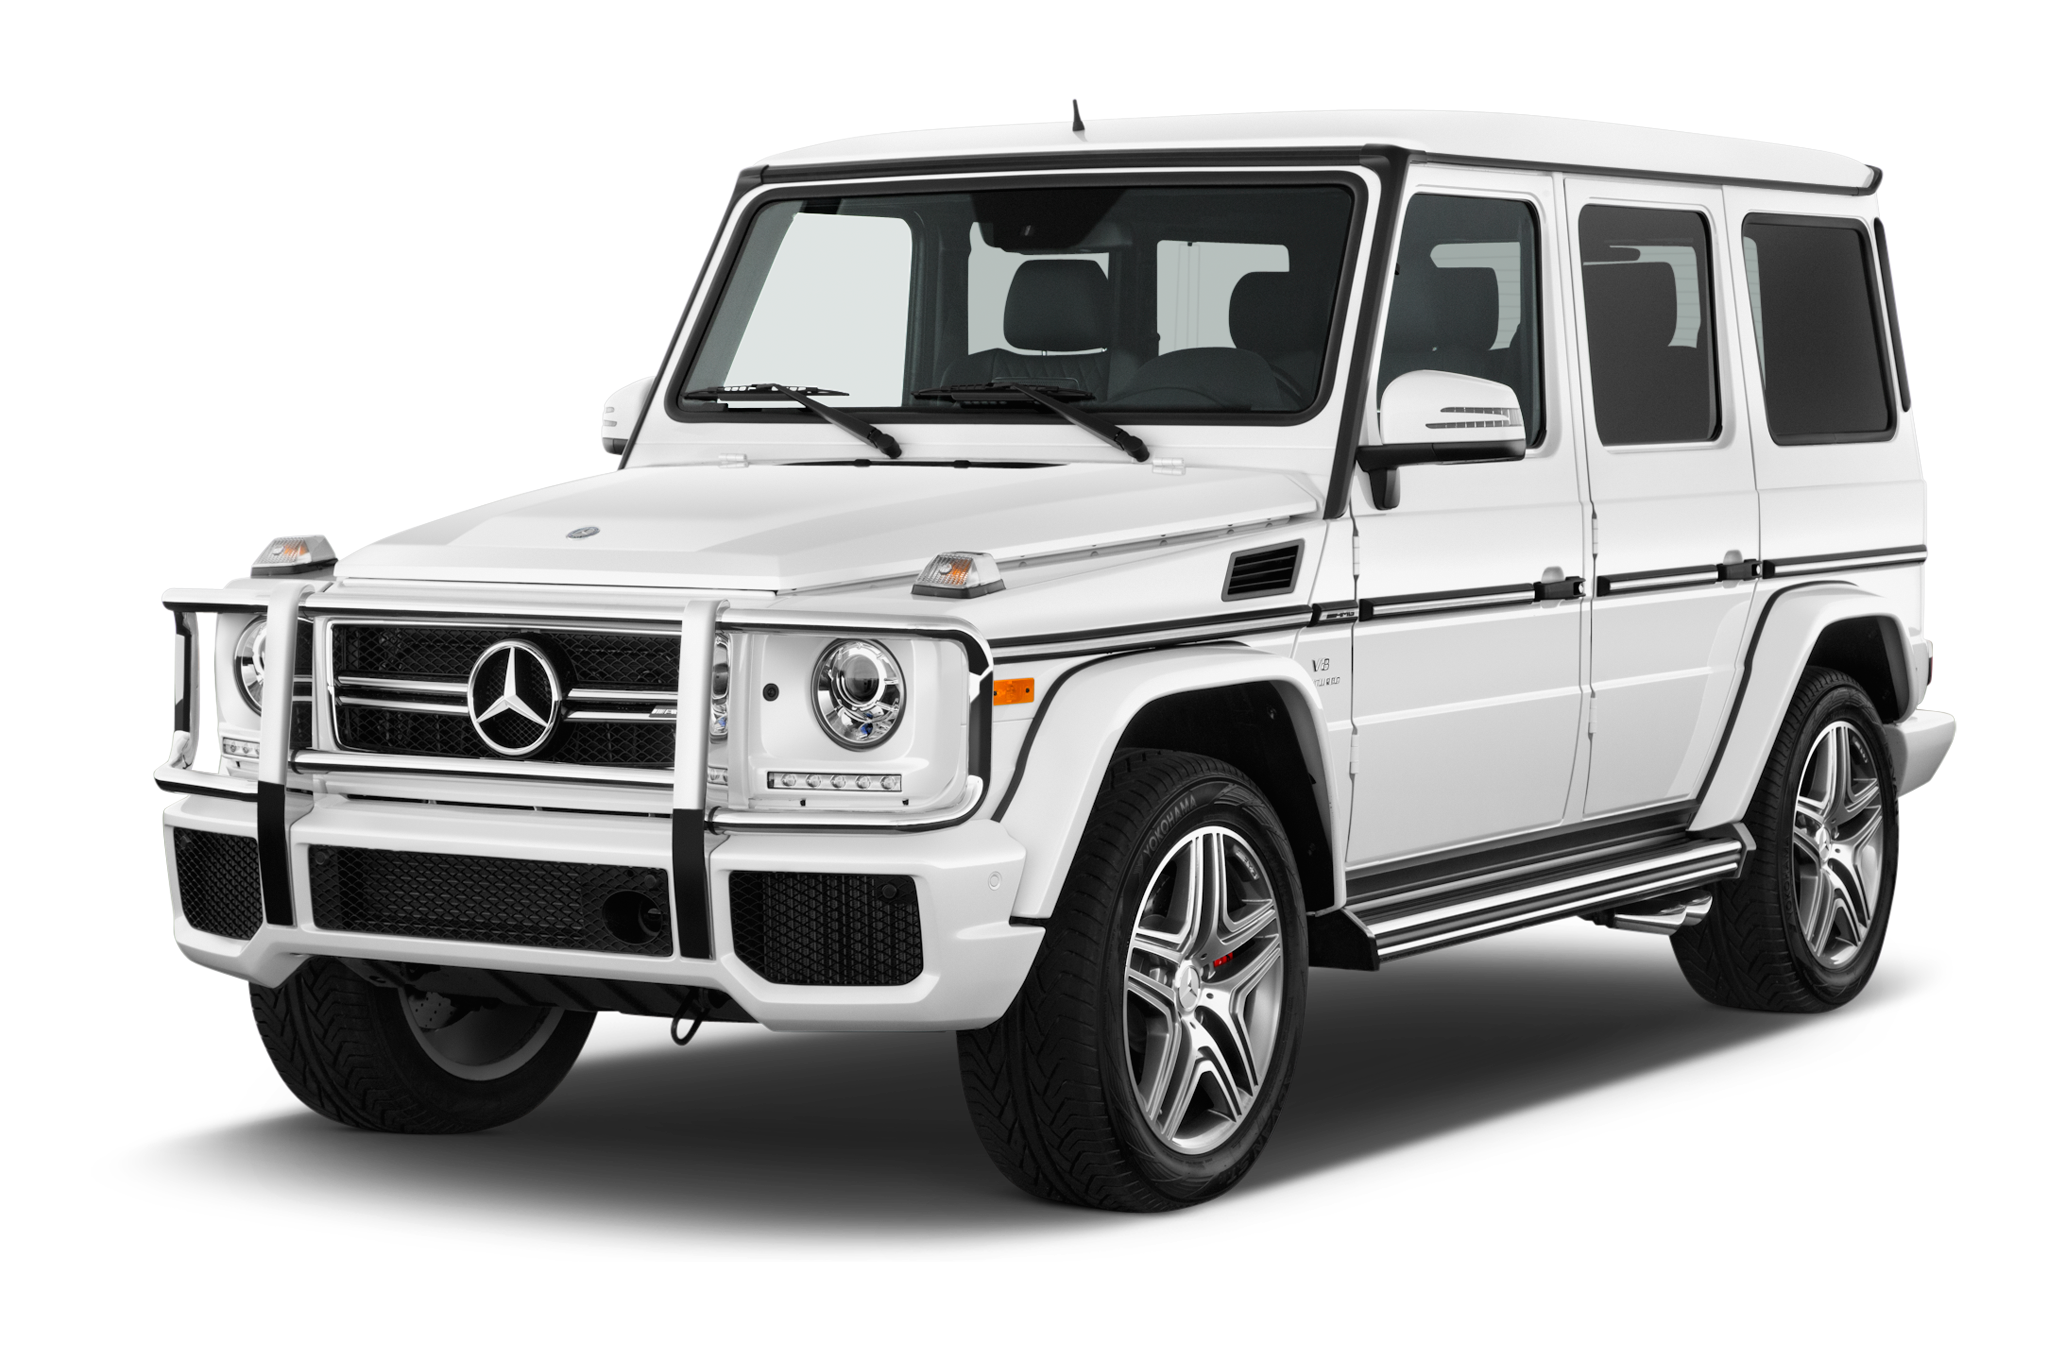 Mercedes Benz G500 4x4 Squared Enters Production Costs